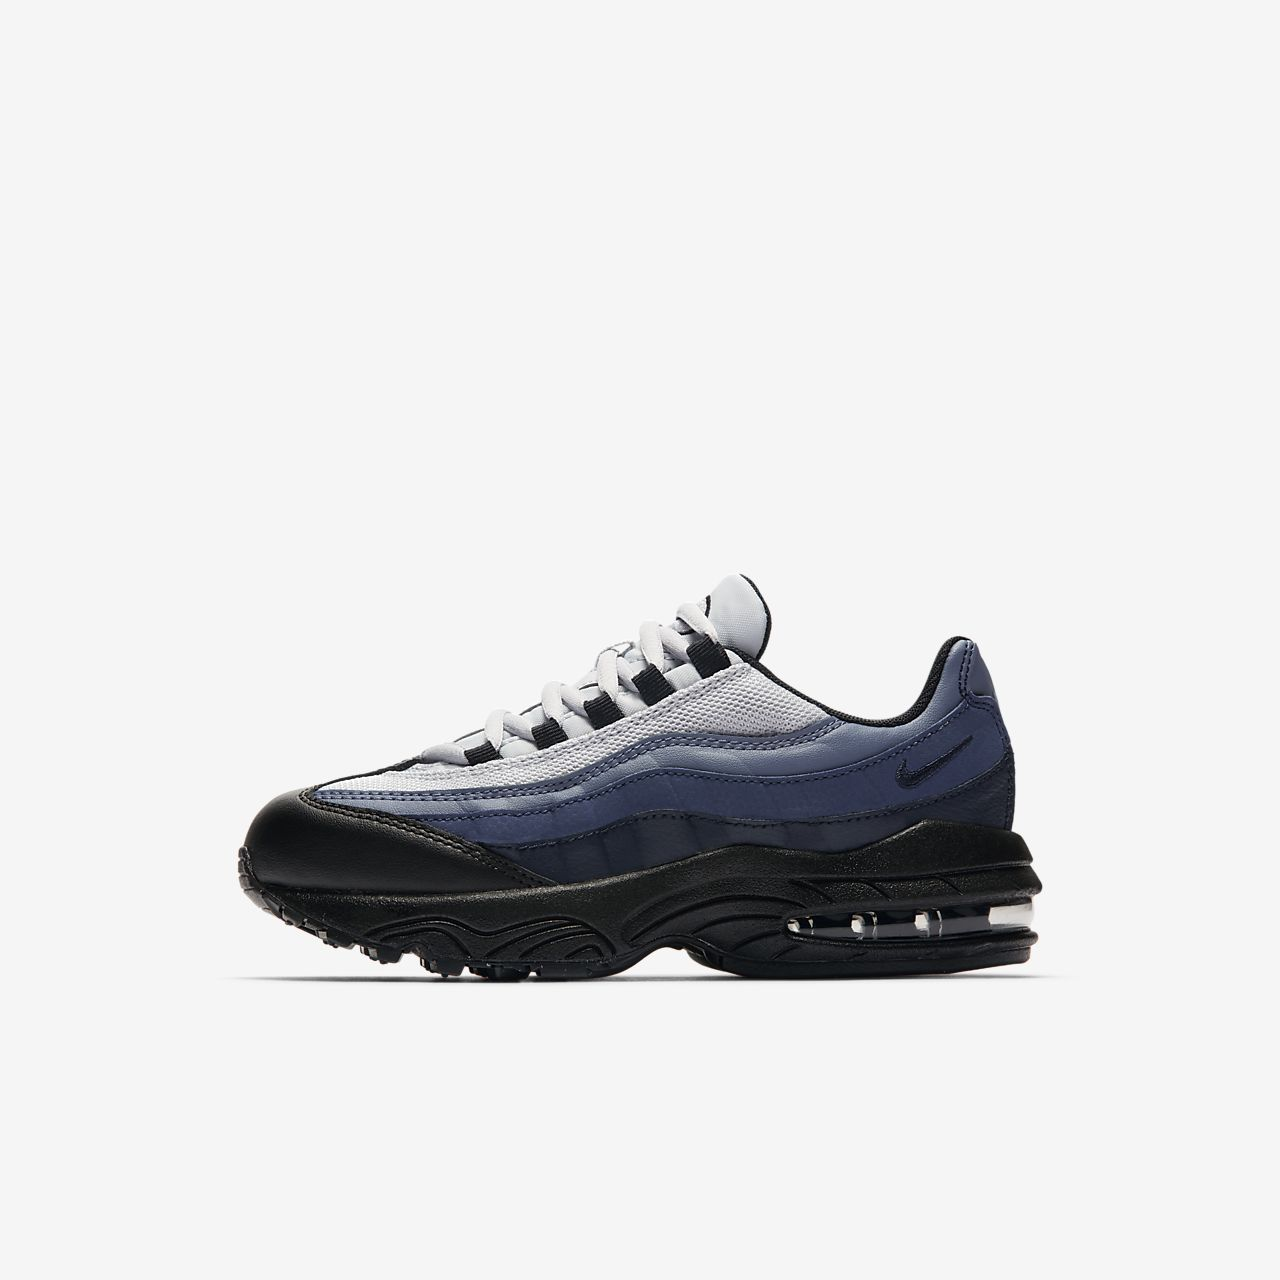 nike tn air max plus bambino